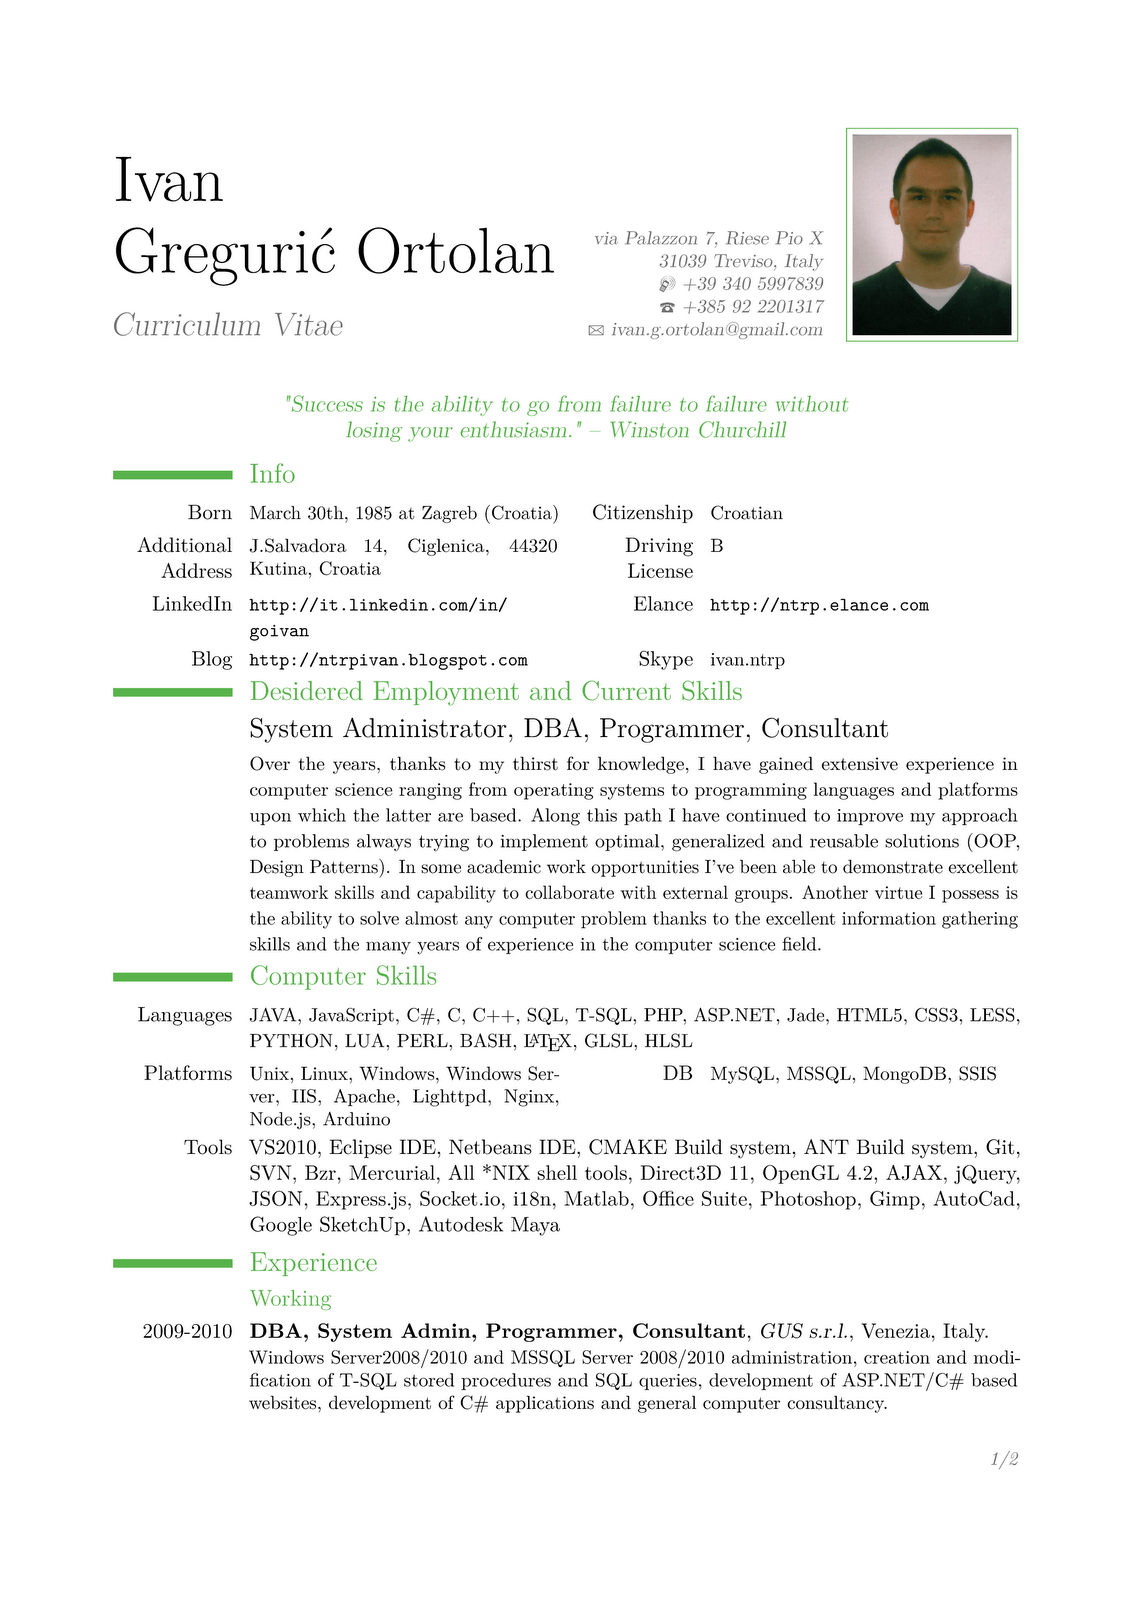 Resume English examples - Obfuscata